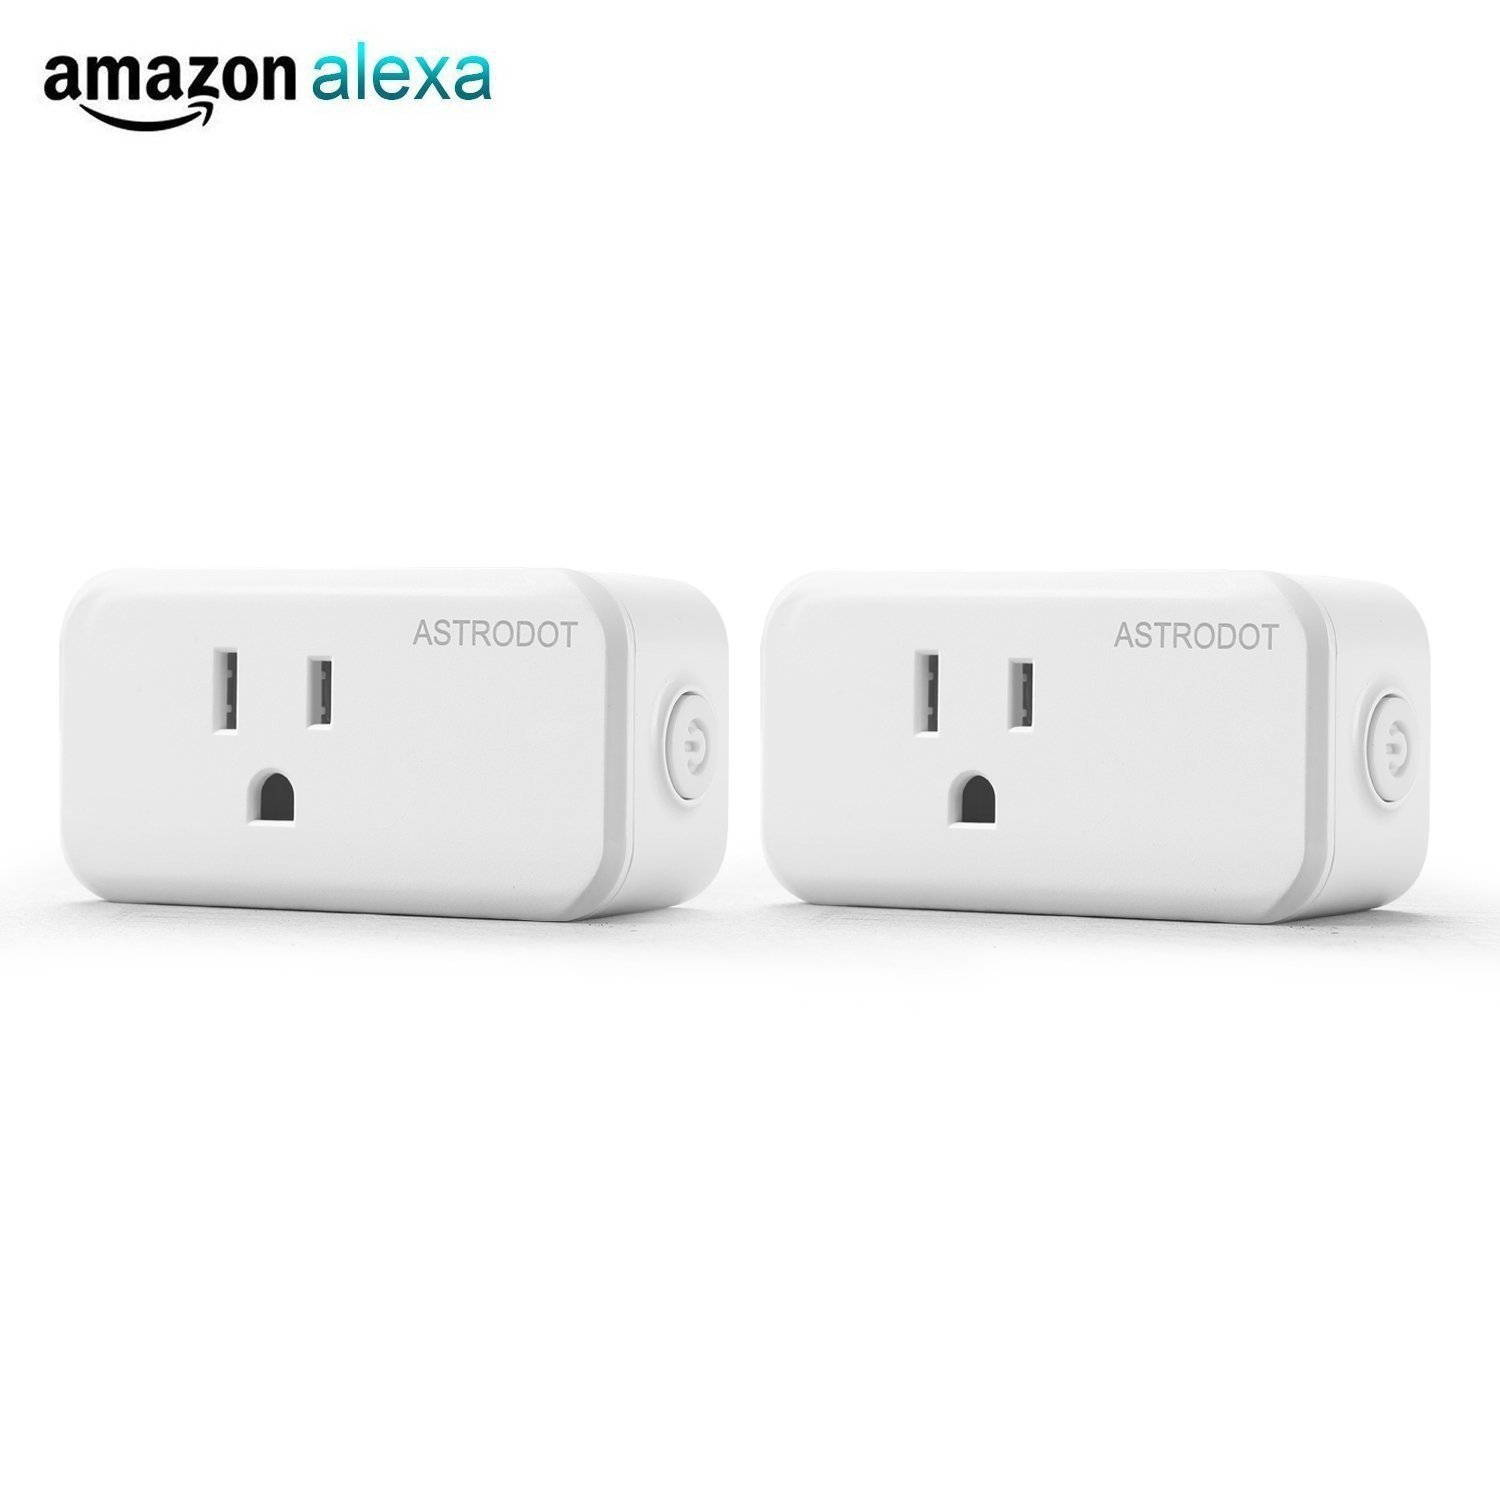 Wifi Smart Plug Mini, Astrodot Smart Home Power Control Socket, Remote Control Your Household Equipment from Everywhere, No Hub Required, Compatible with Alexa, Echo Dot & Google Home (2)